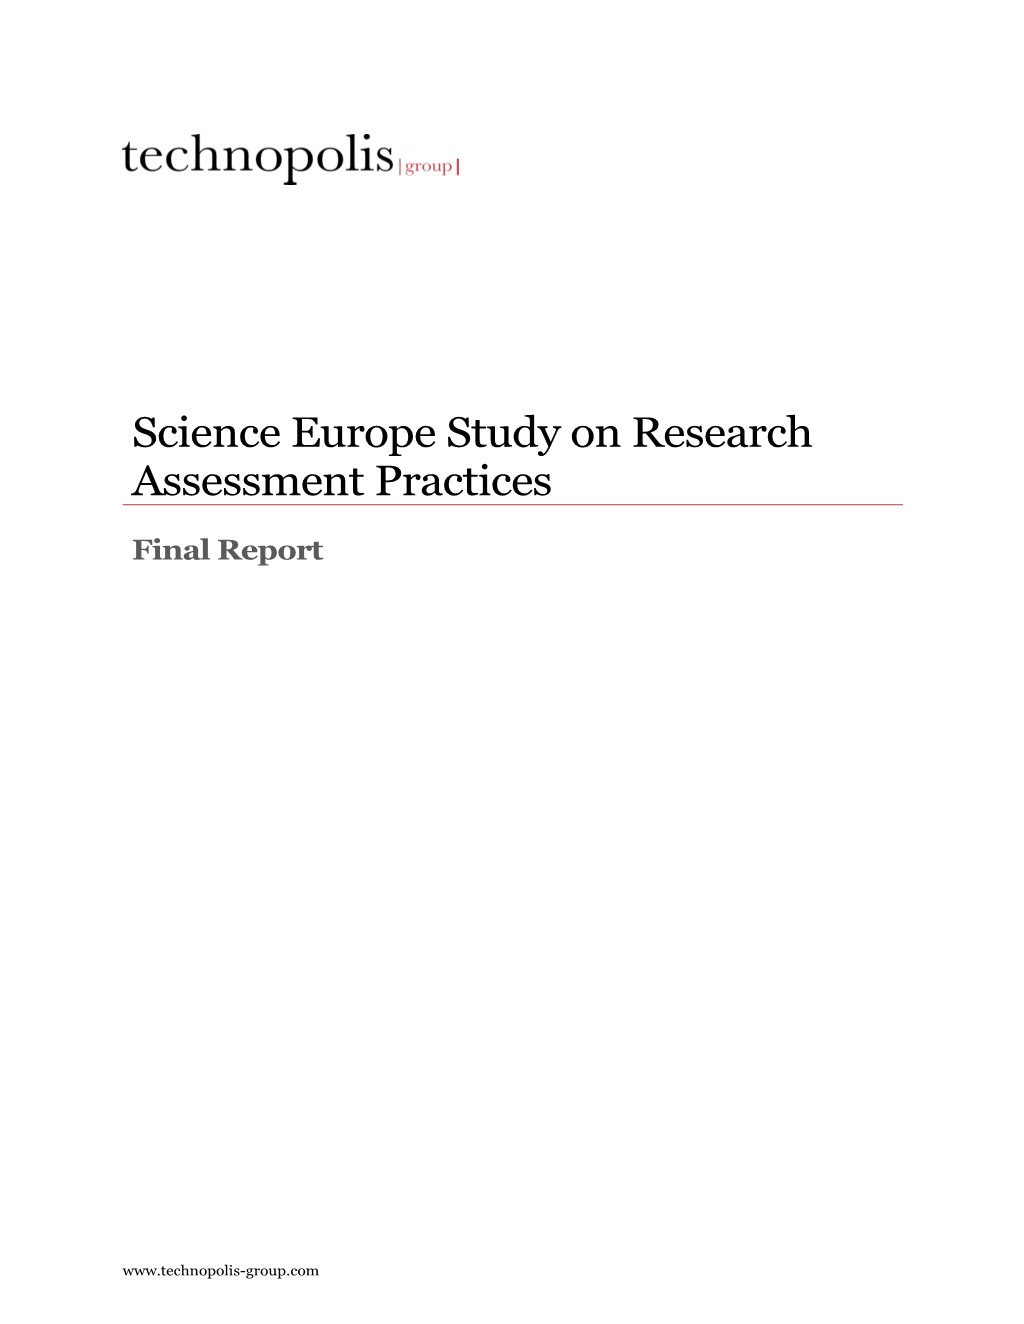 Cover of the 2019 Science Europe Study on Research Assessment Practices